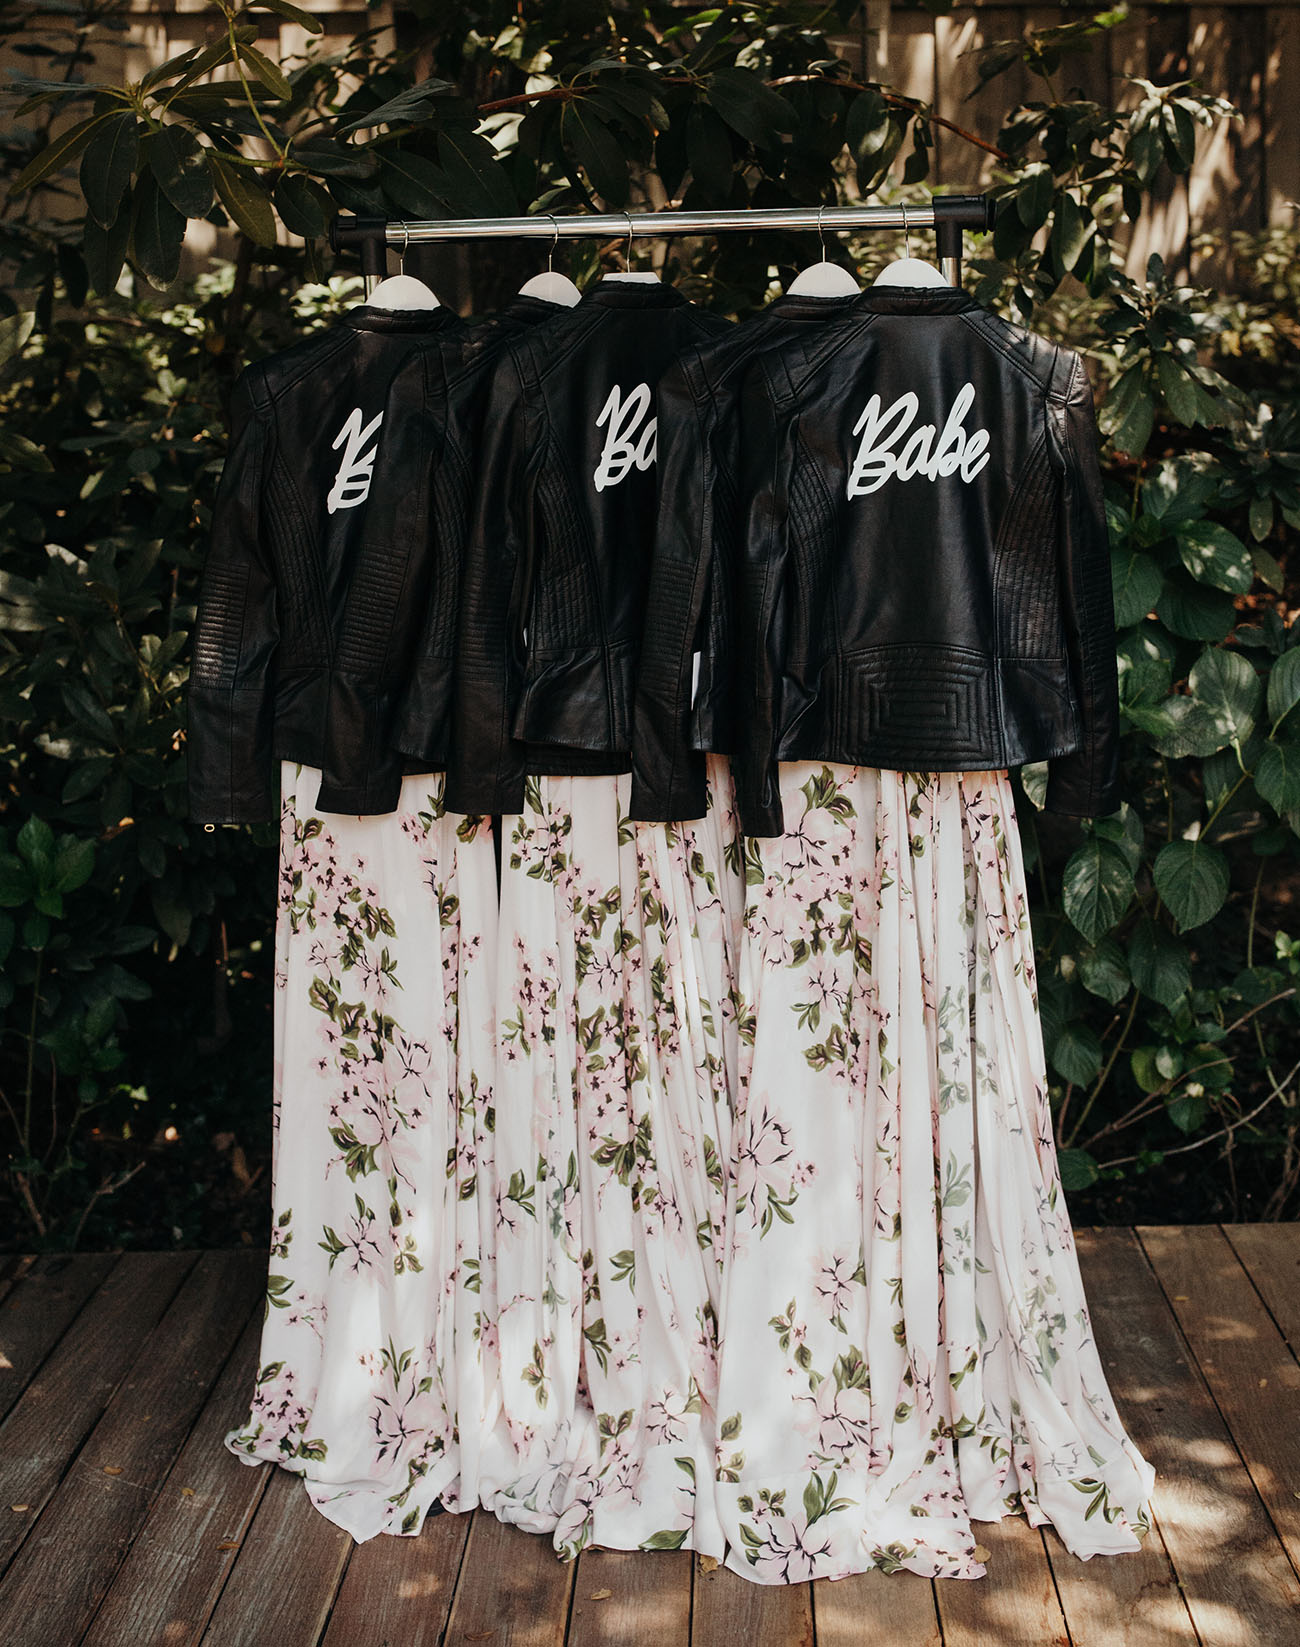 a9486b31781 Trend Alert  Denim and Leather Bridal Jackets - Perfete